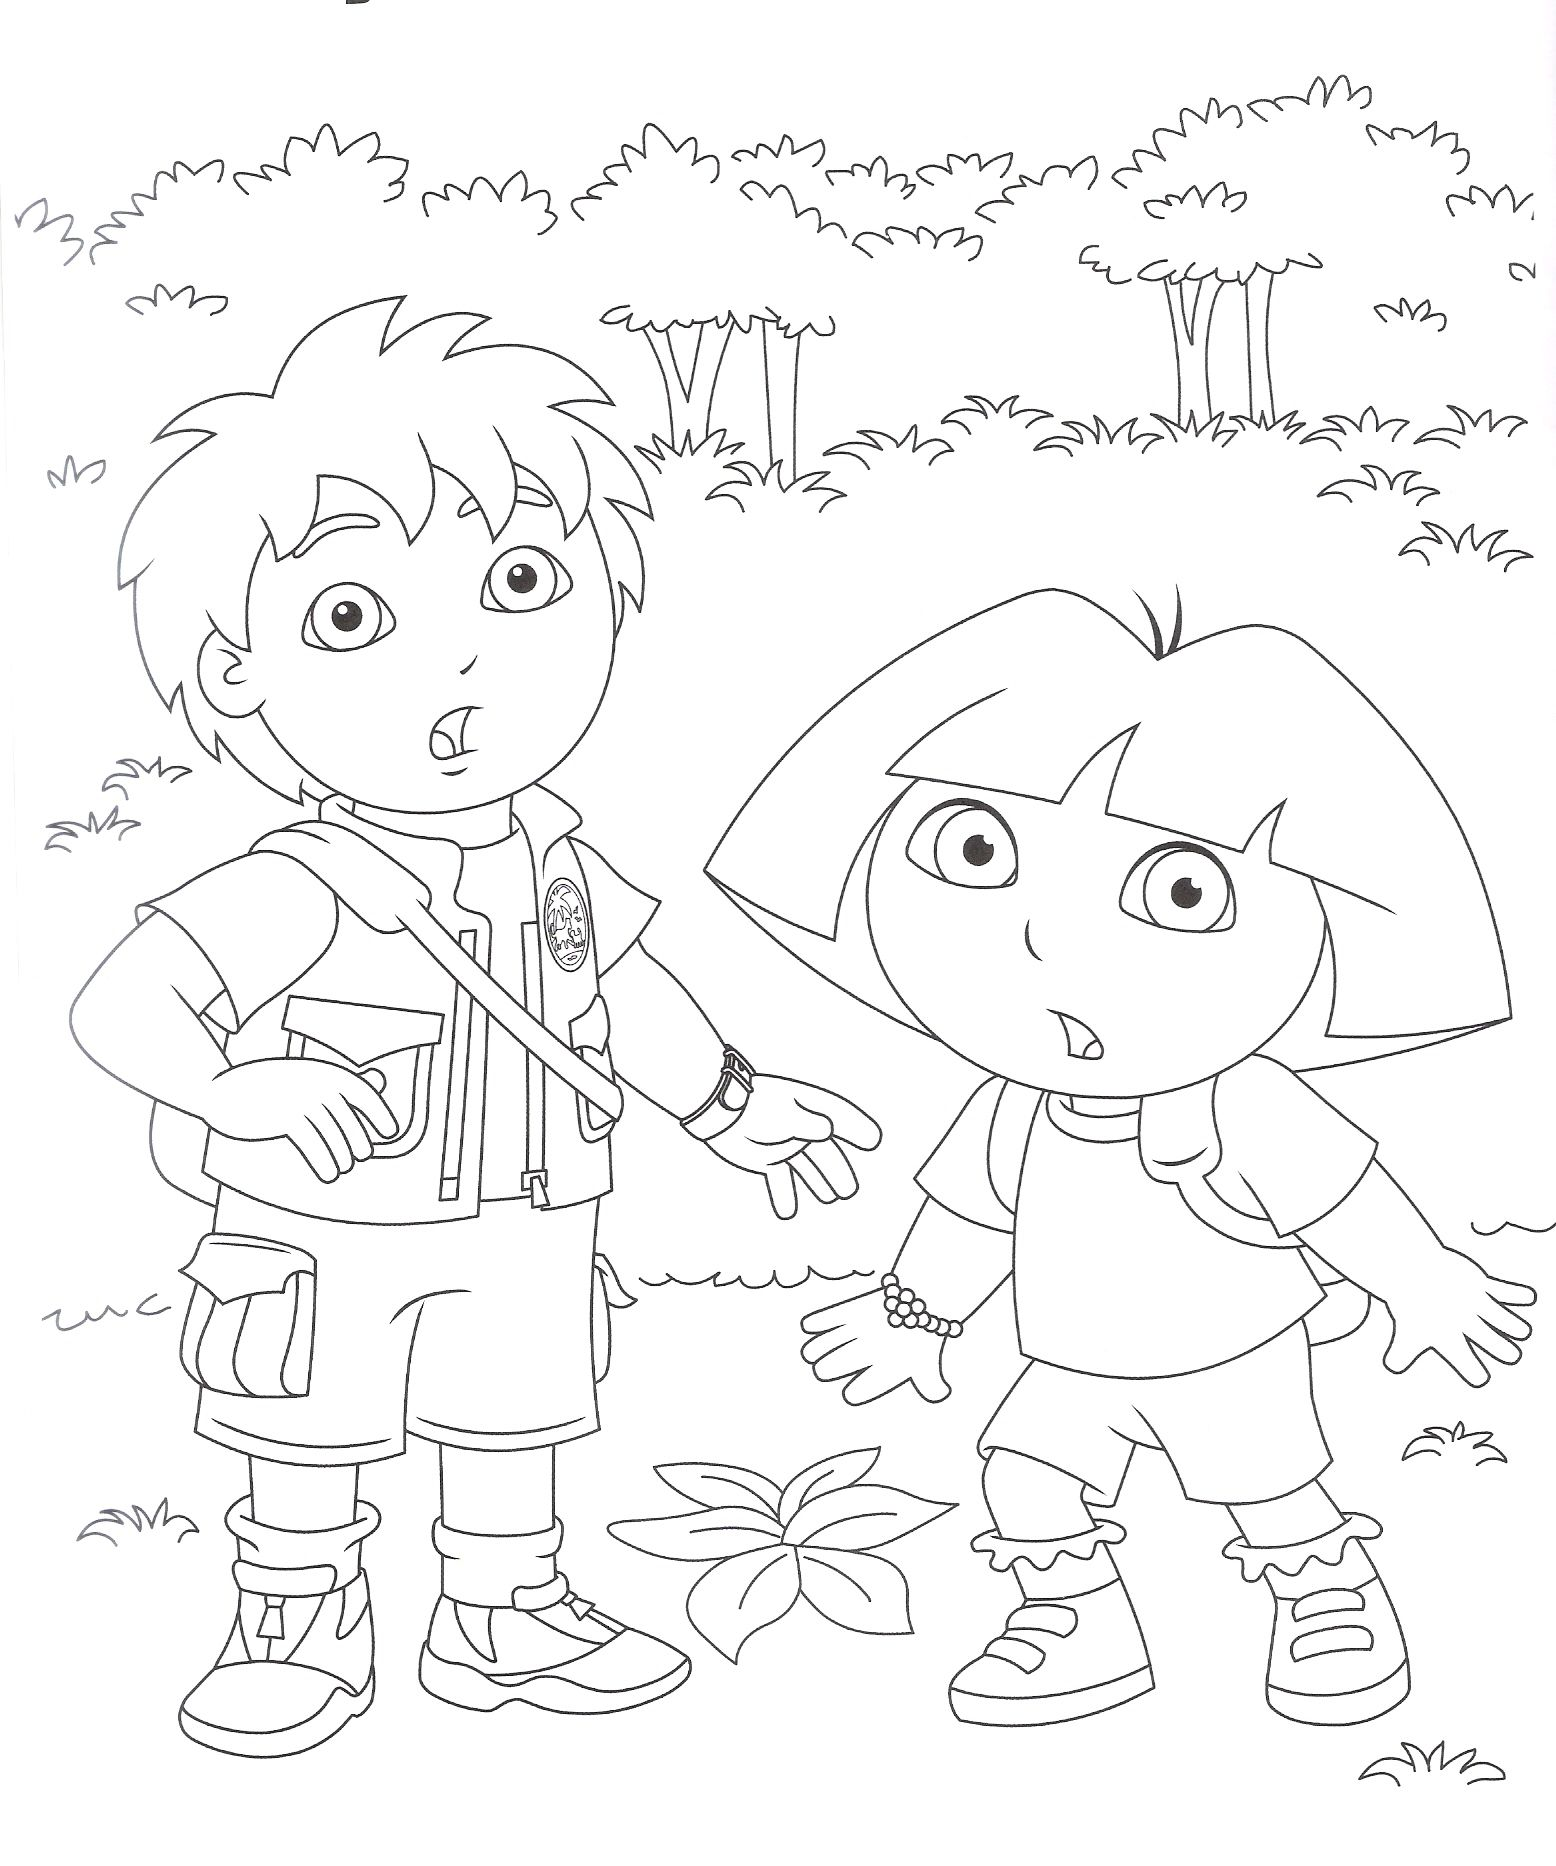 Colering Sheets Diego Coloring Pages Coloring Pages To Print